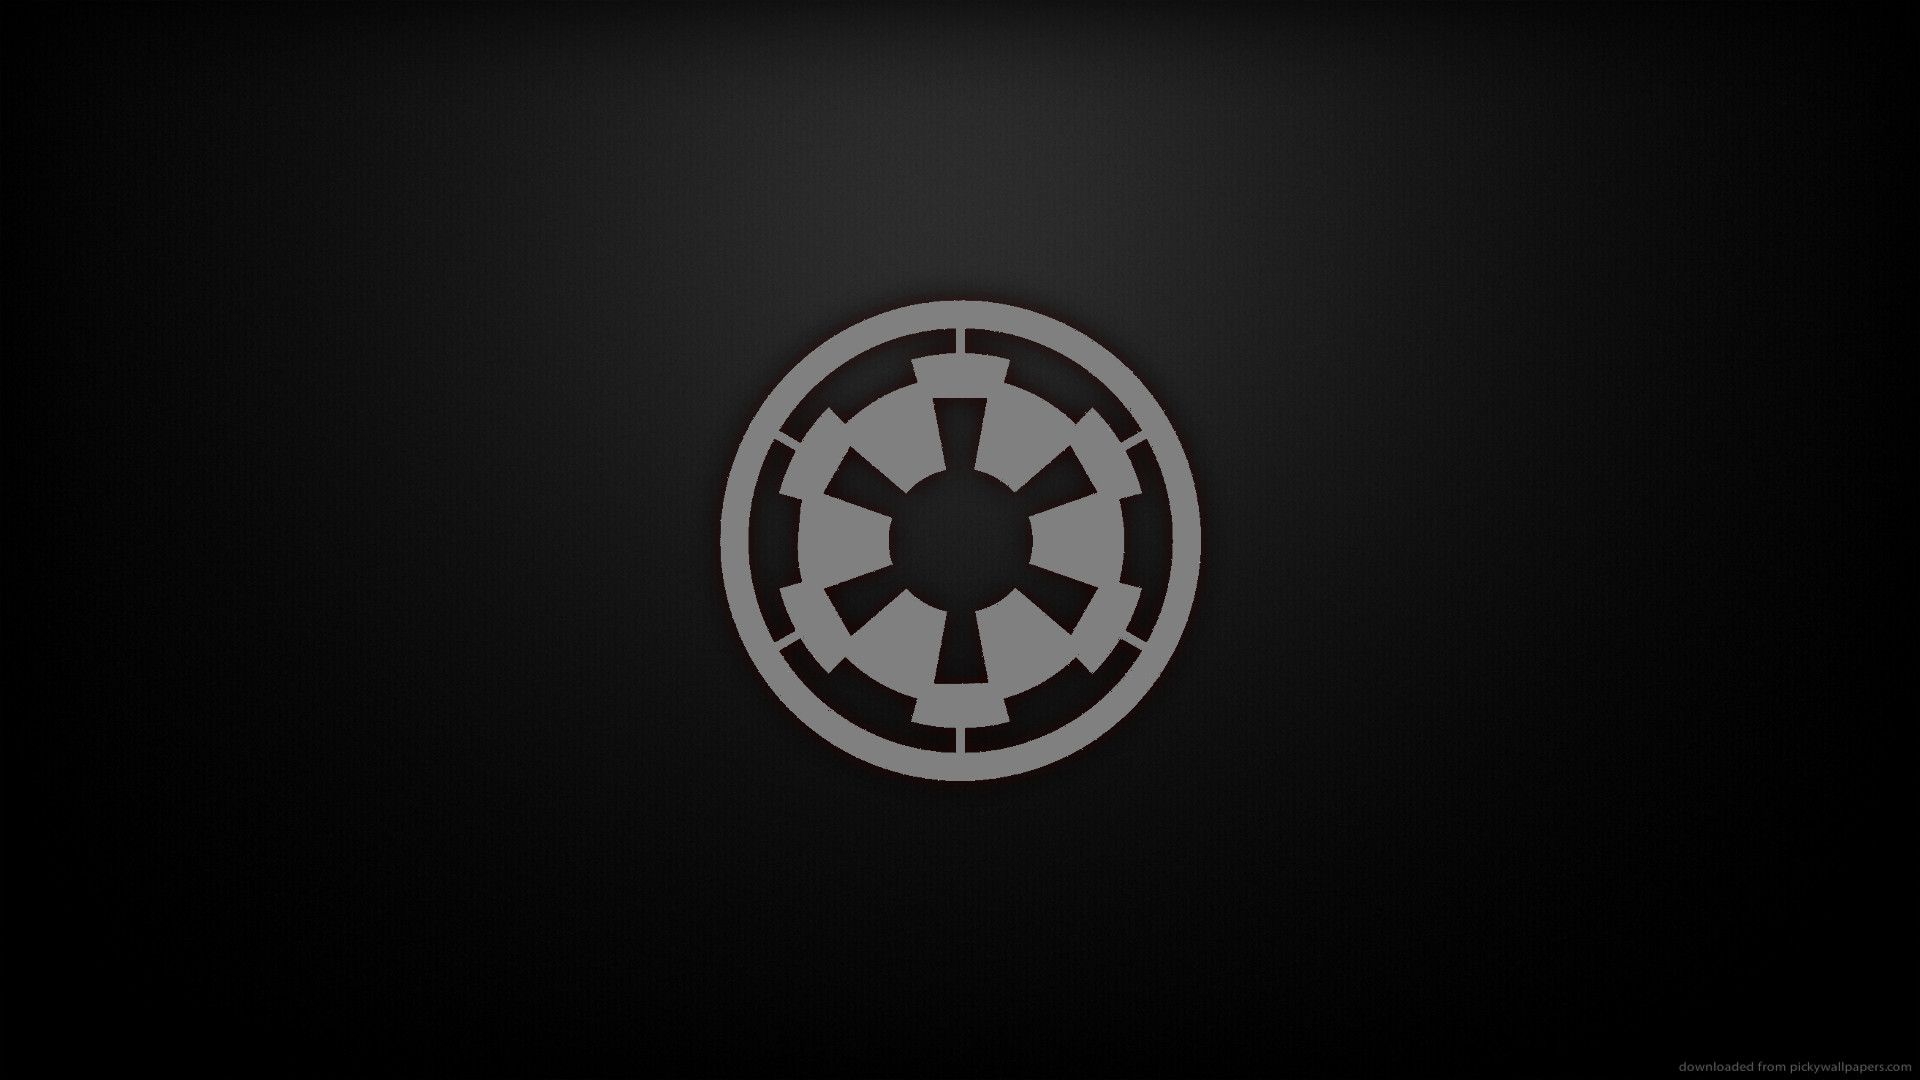 76 Jedi Symbol Wallpapers On Wallpaperplay Star Wars Empire Star Wars Empire Logo Iphone Wallpaper Stars